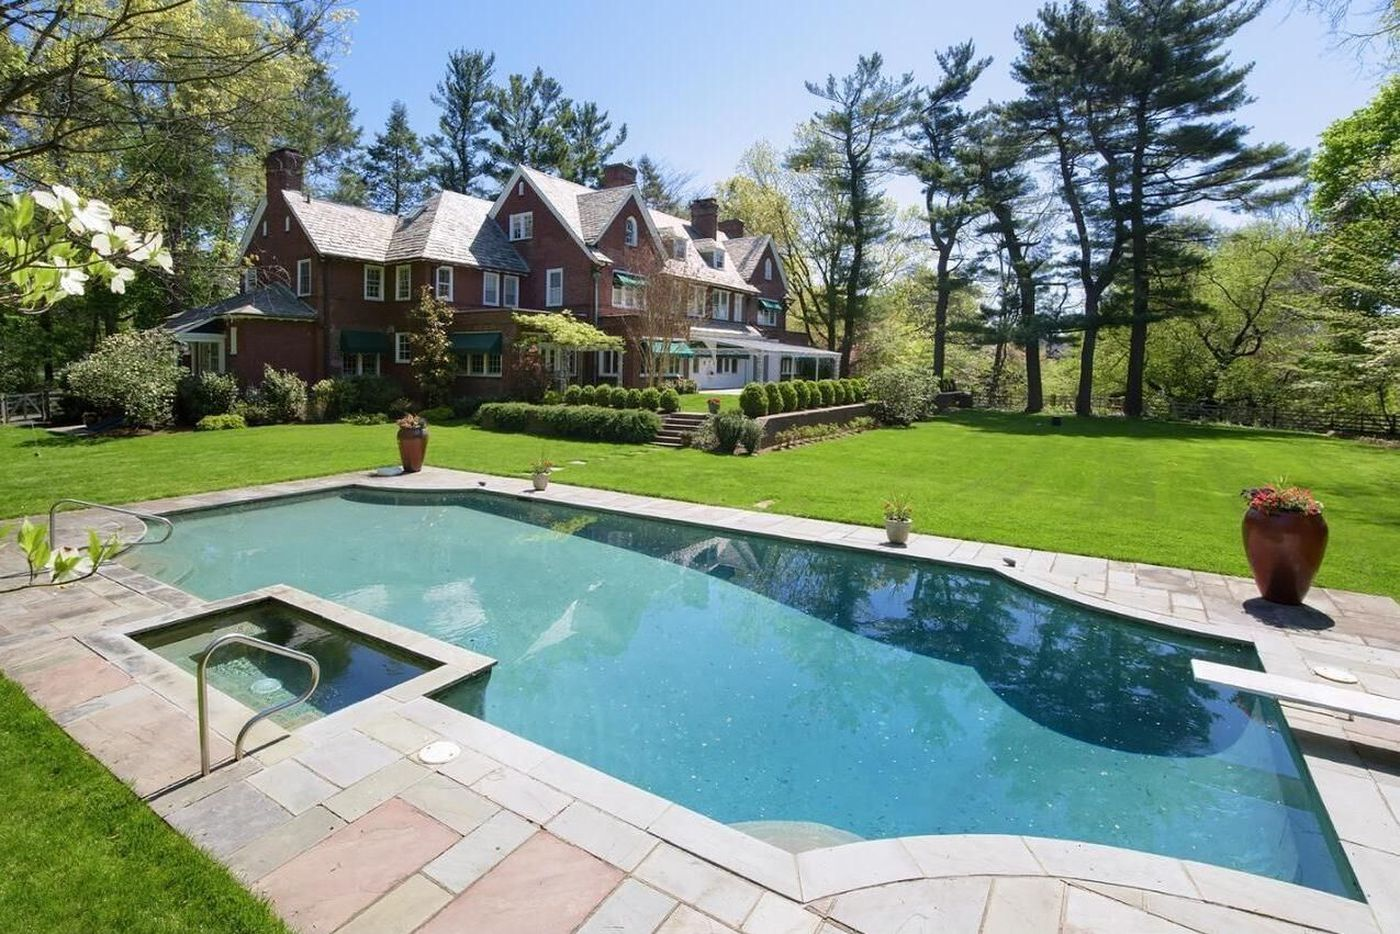 Three Philadelphia homes with pools where you can cool off in style